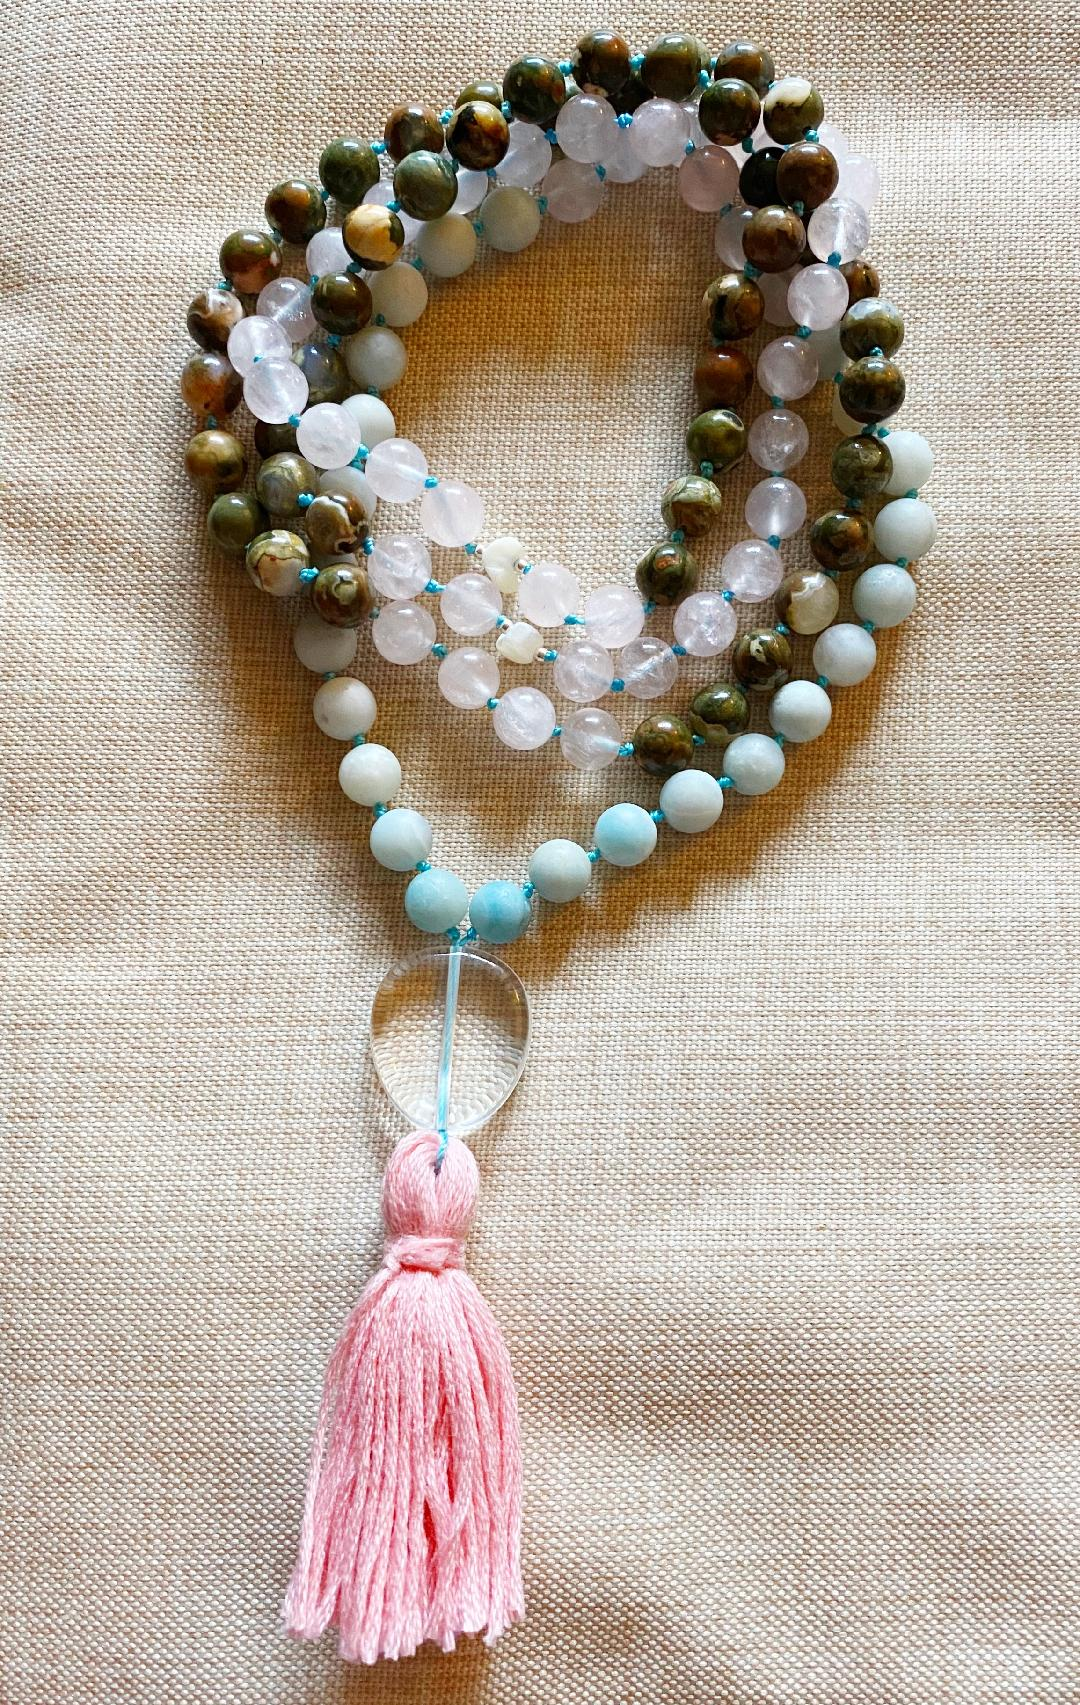 custom meditation mala to aid in clear, grounded, loving communication in your relationships